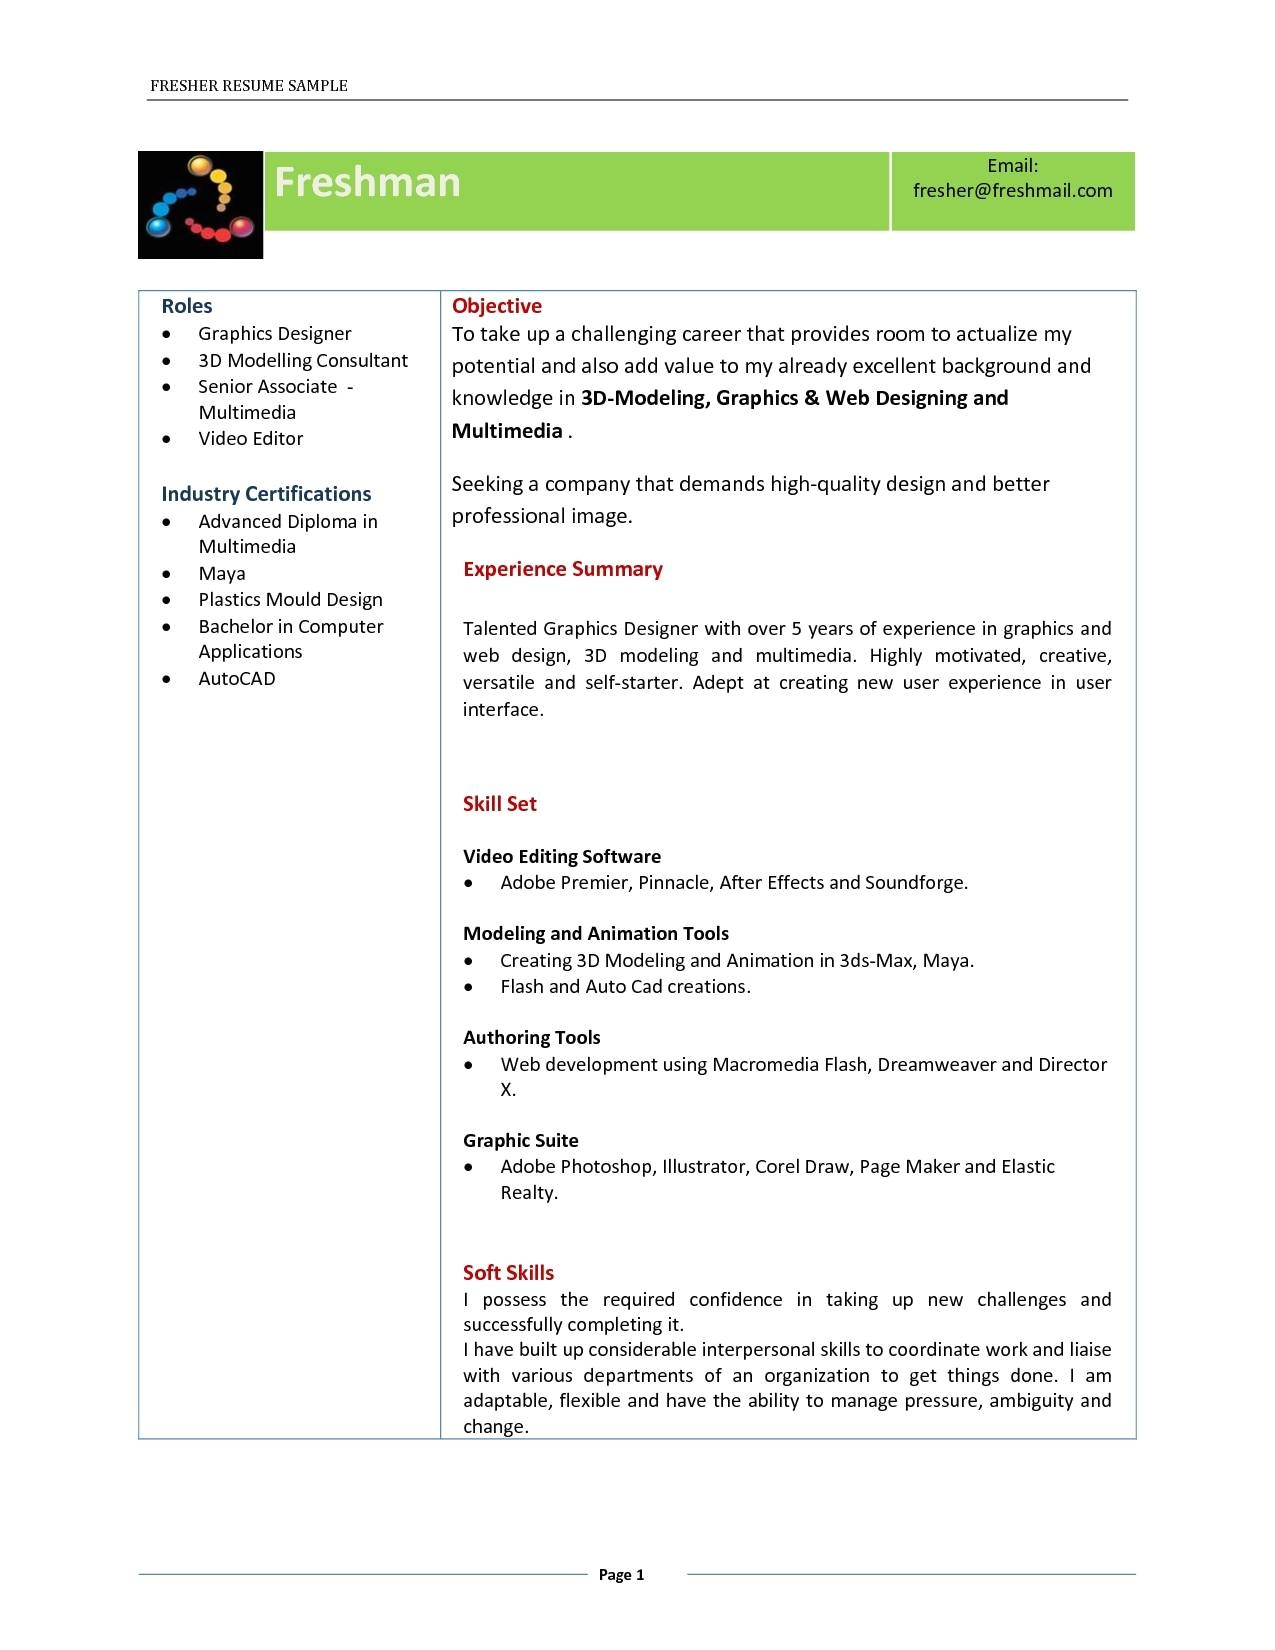 bds fresher resume sample luxury adorable it fresher resume sample doc also bds resume format bds